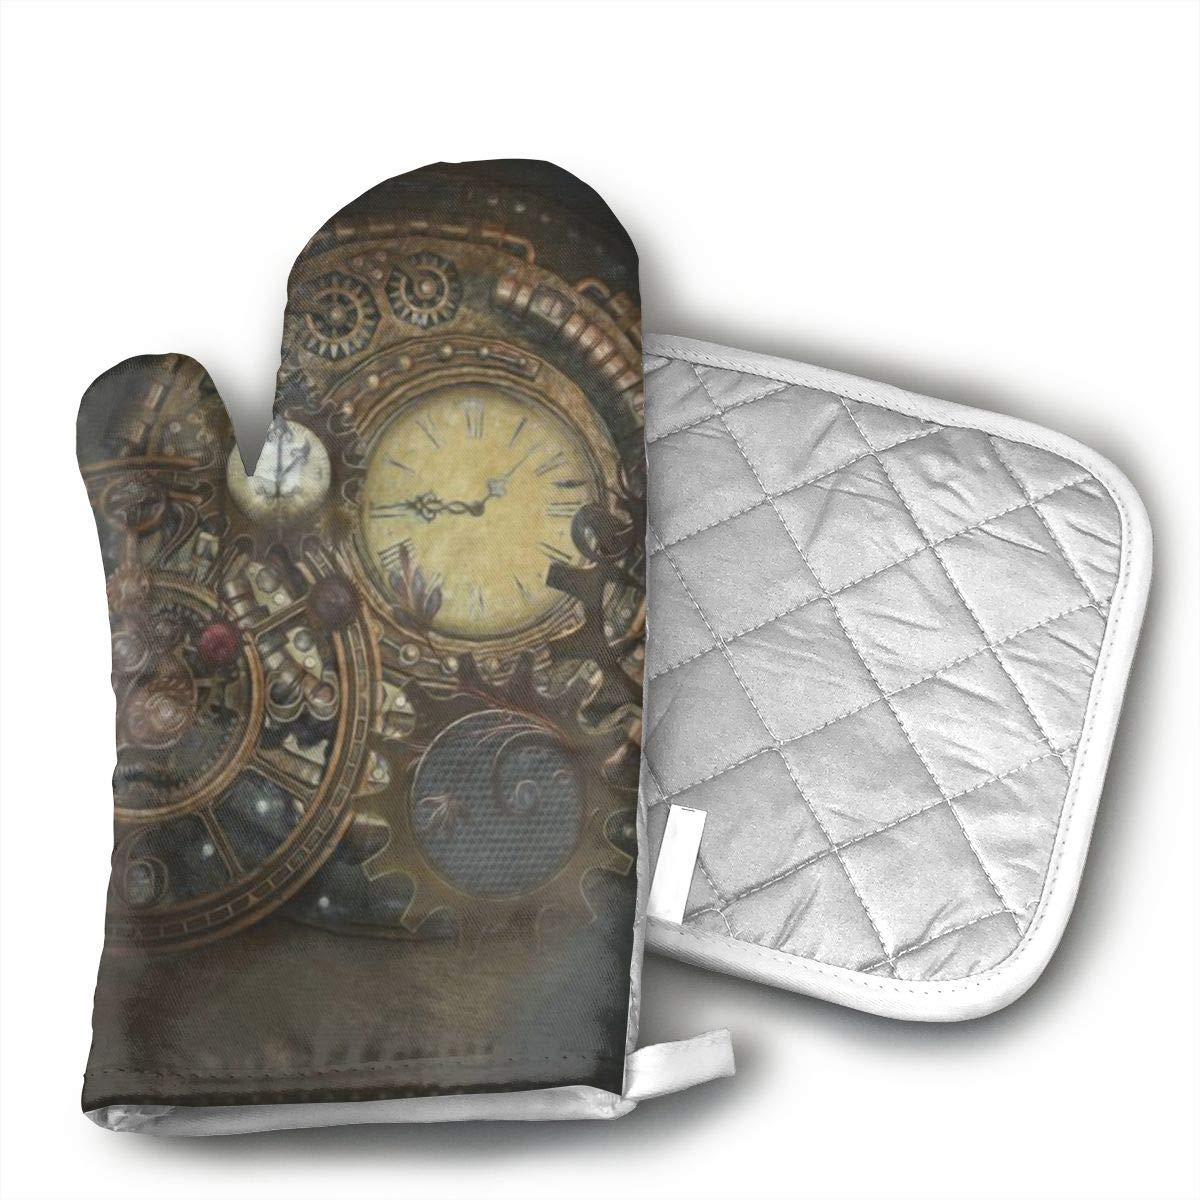 GRSTfsm Steampunk Clocks.jpg Heat Resistant Oven Mitts, Soft Cotton Lining for Safe BBQ Cooking Baking Grilling